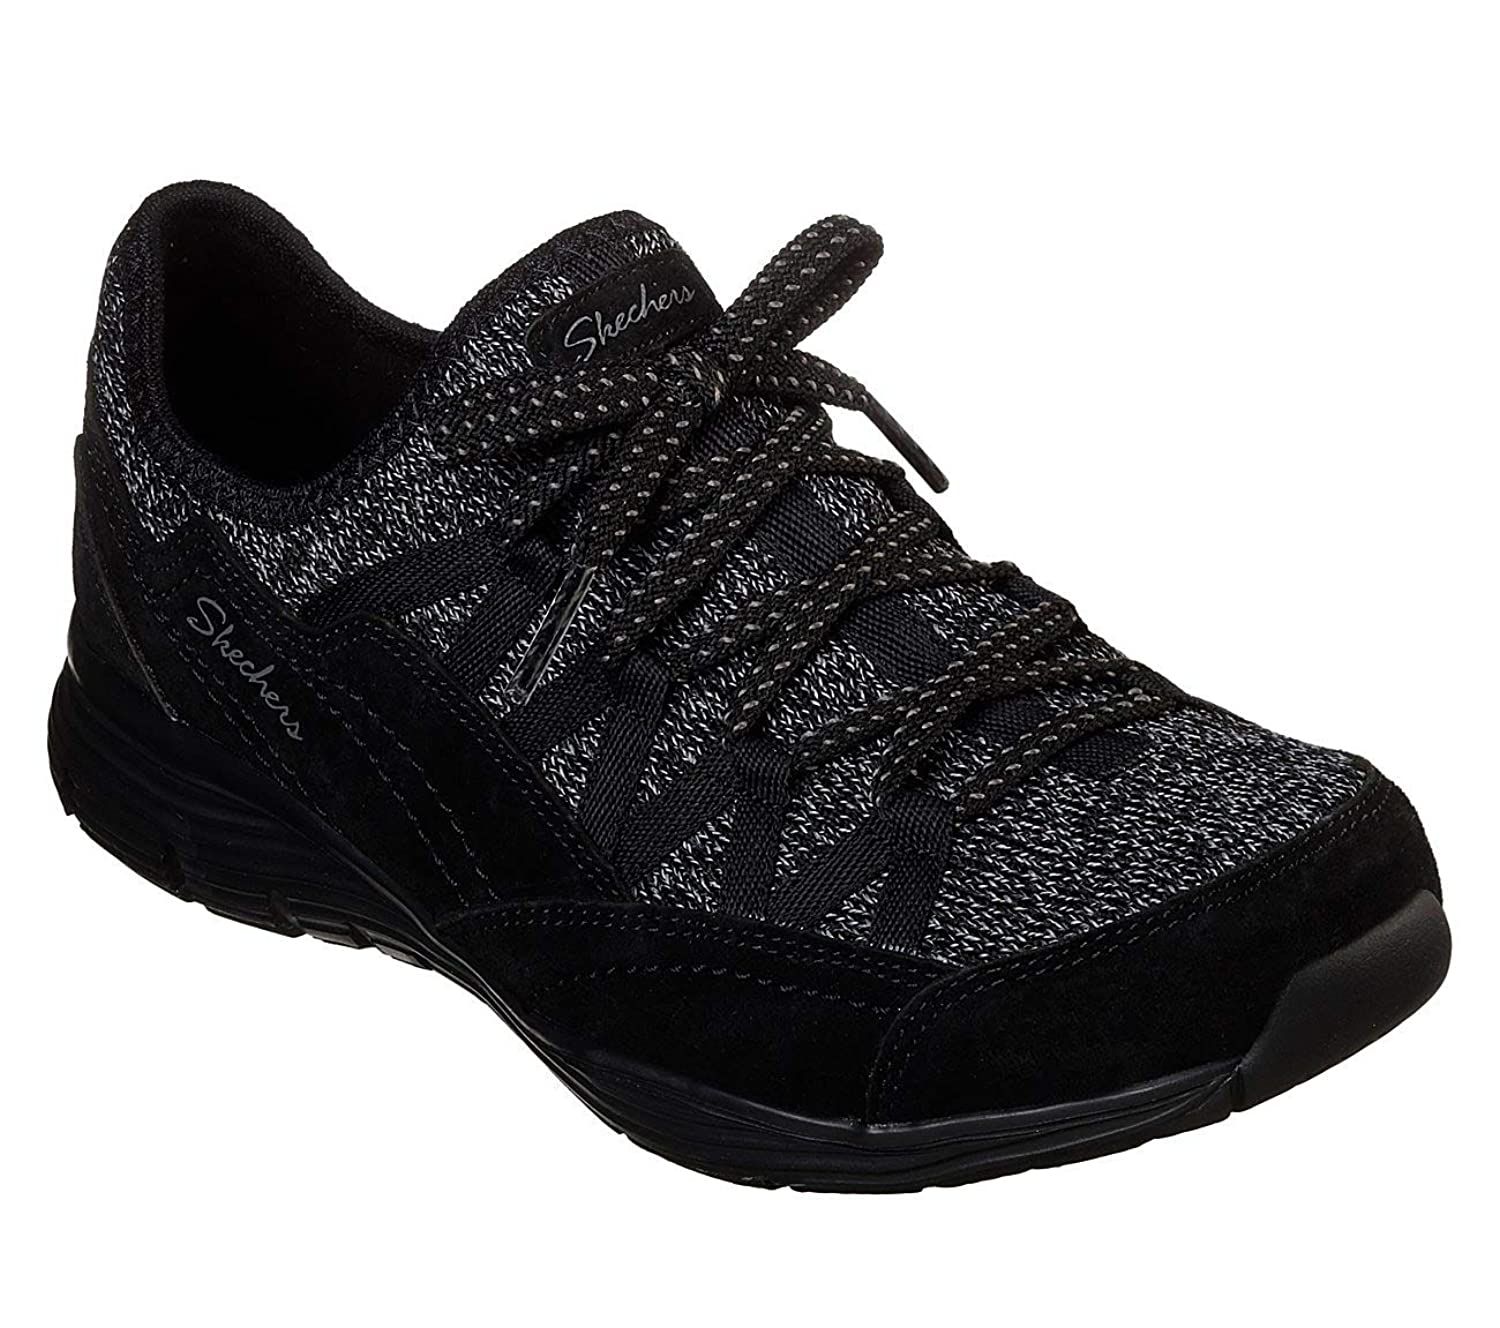 On Fit Slip Line Seager Zip Skechers Women's Quarter Fixed Bow xwHAB7Wqnc